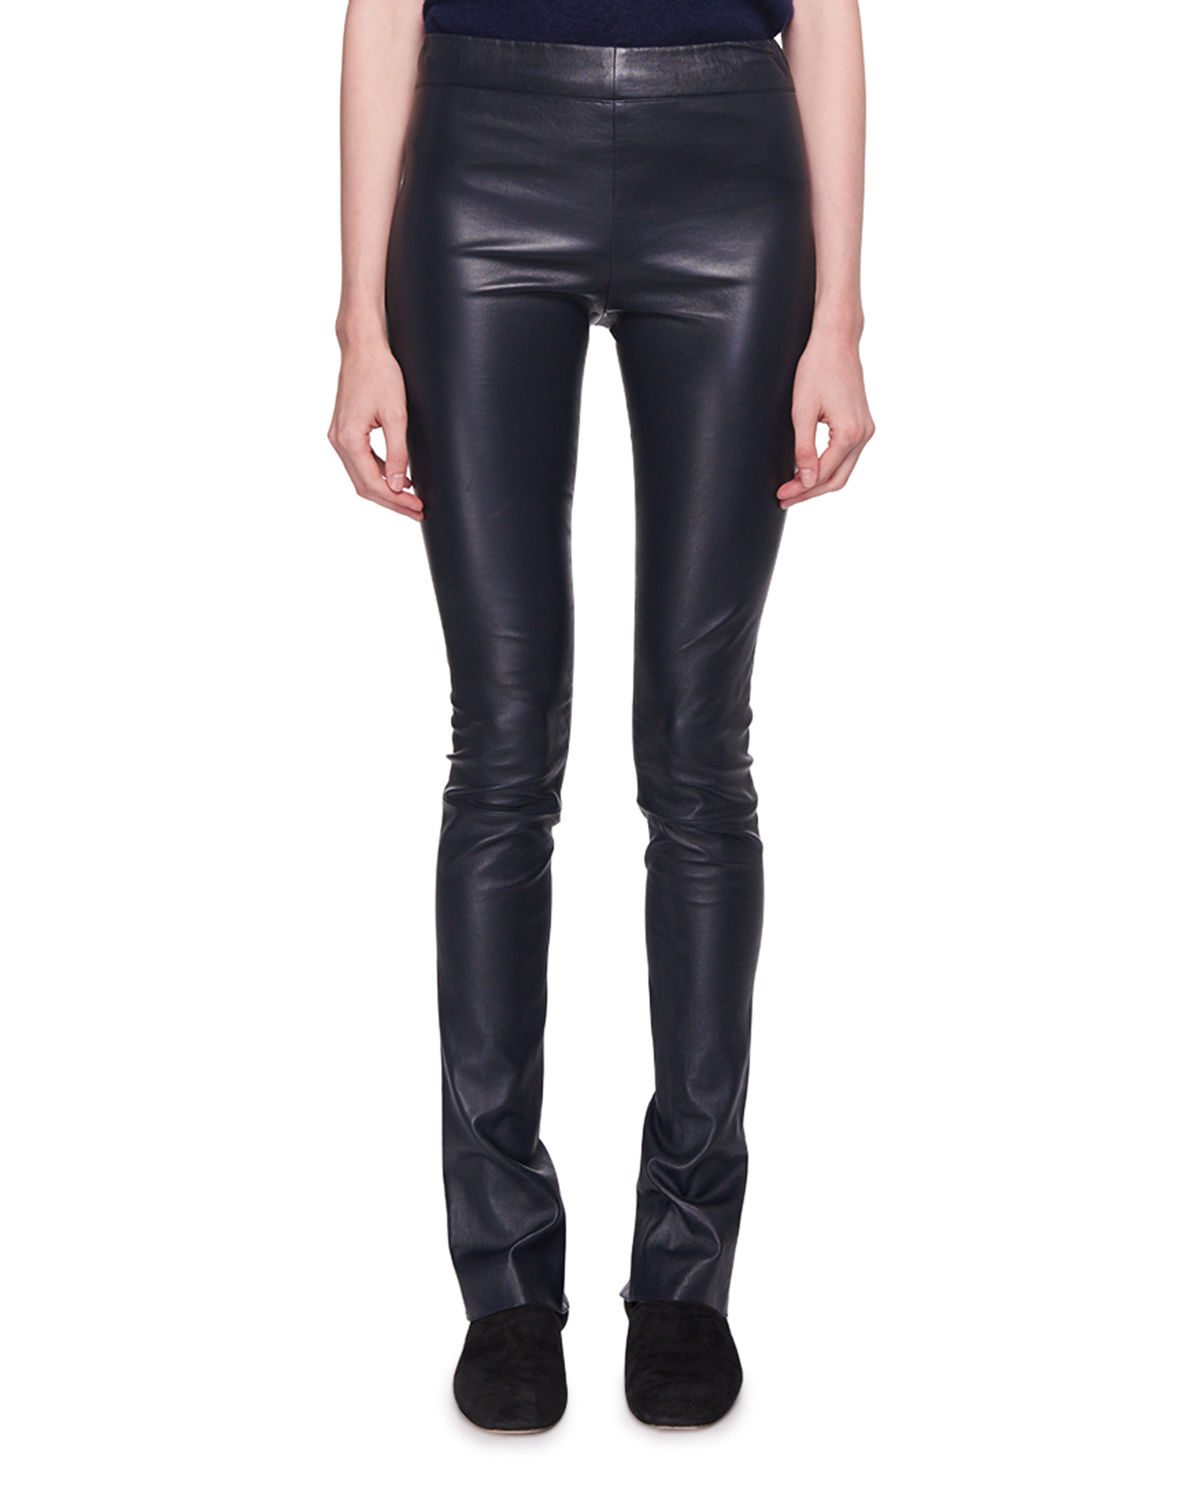 Dorcarr Split-Cuffs Fitted Lamb Leather Pants